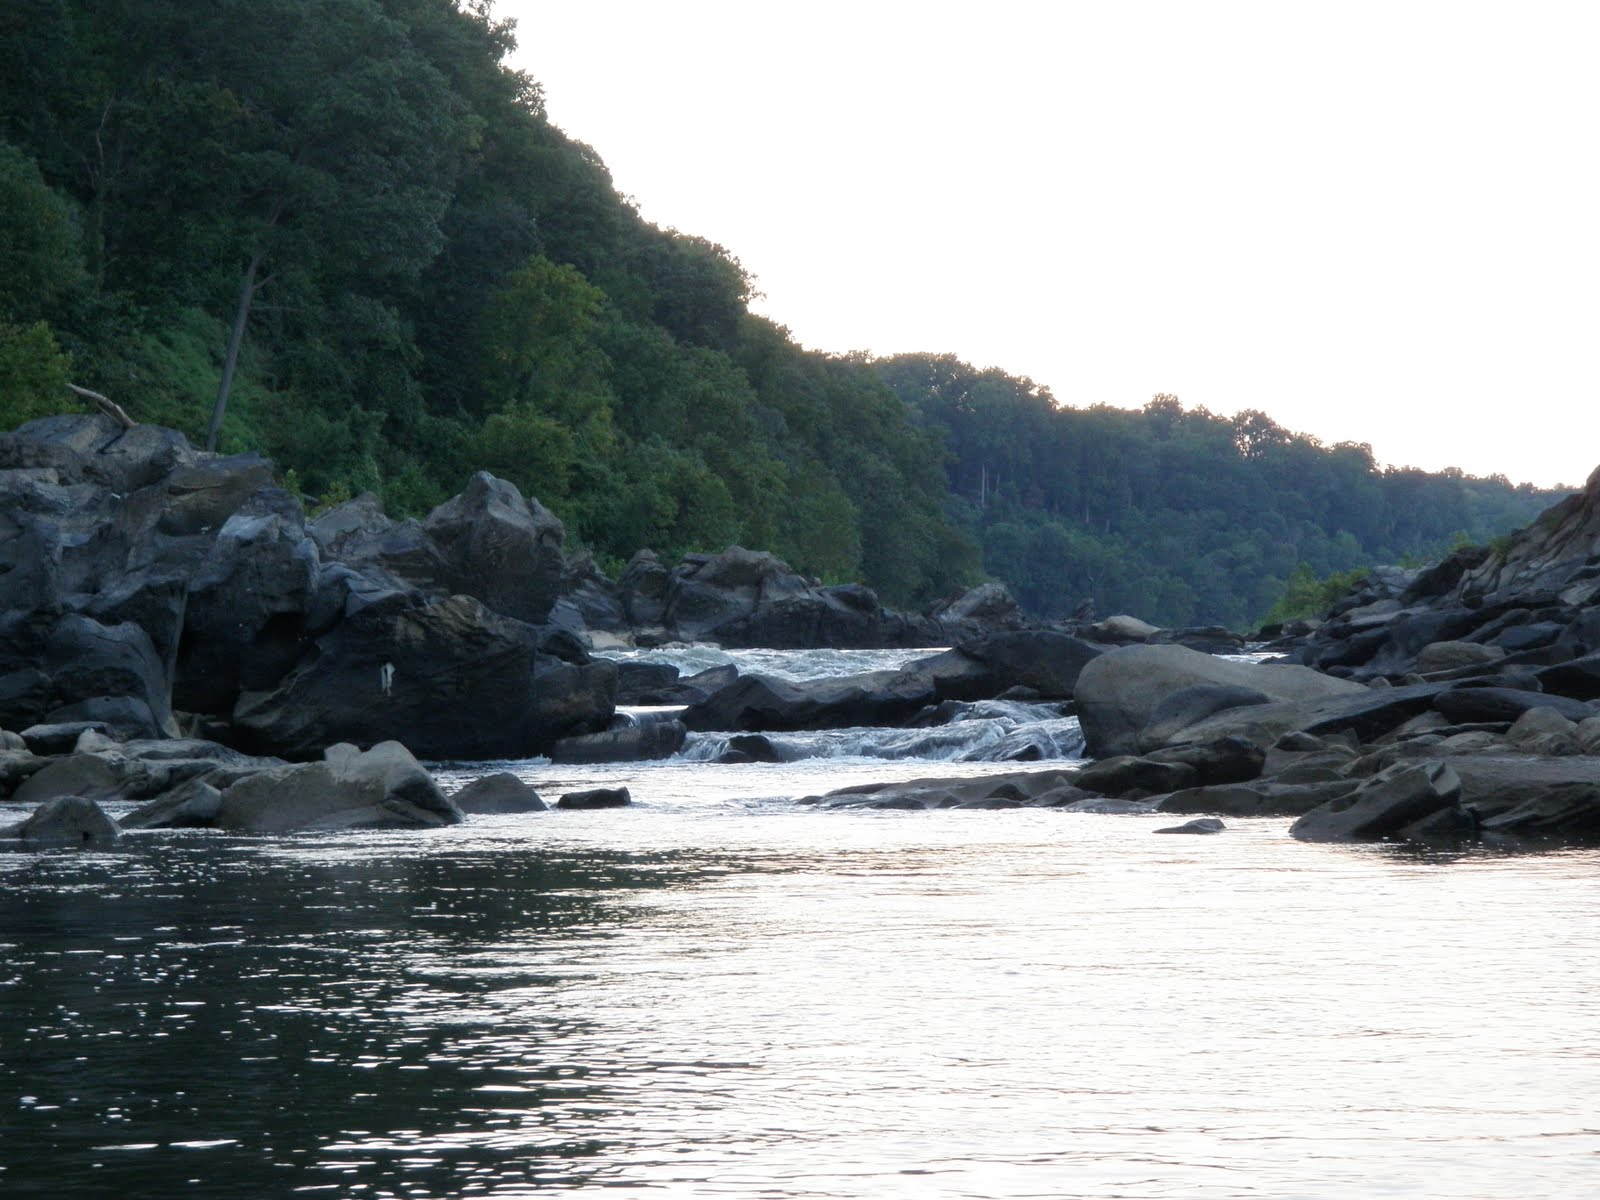 I only work to finance my fishing potomac above chain for Potomac river fishing spots